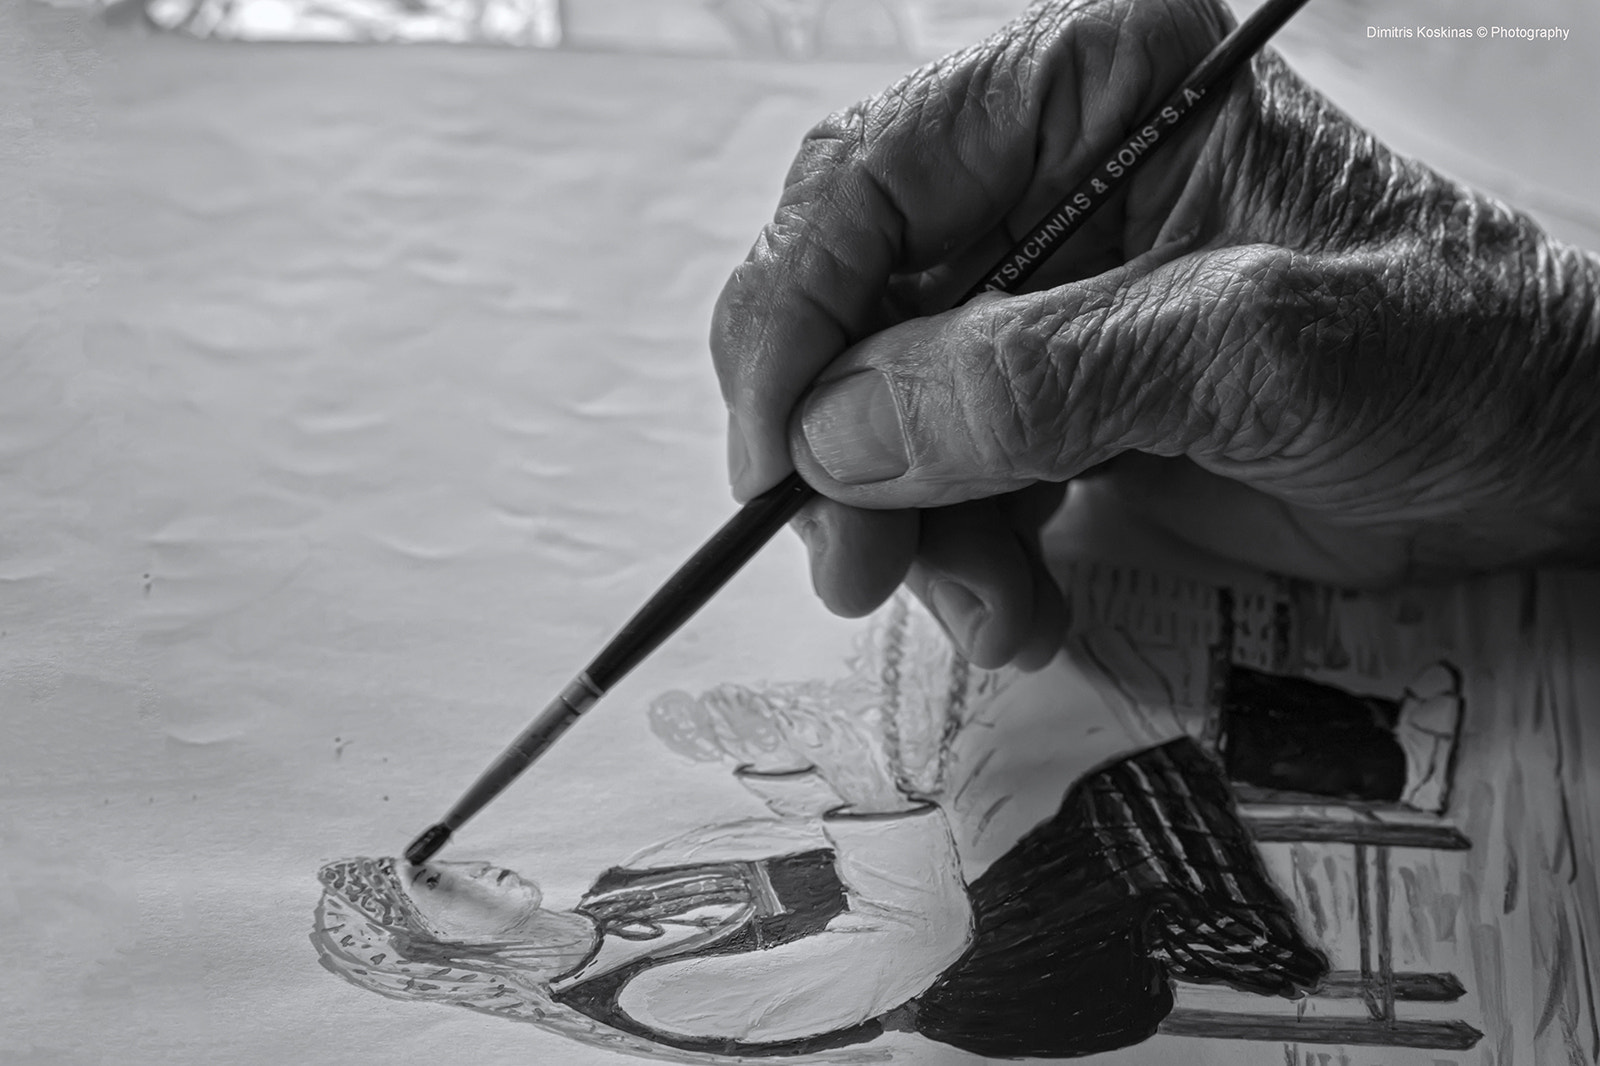 Photograph Τhe Painter by Dimitris Koskinas on 500px